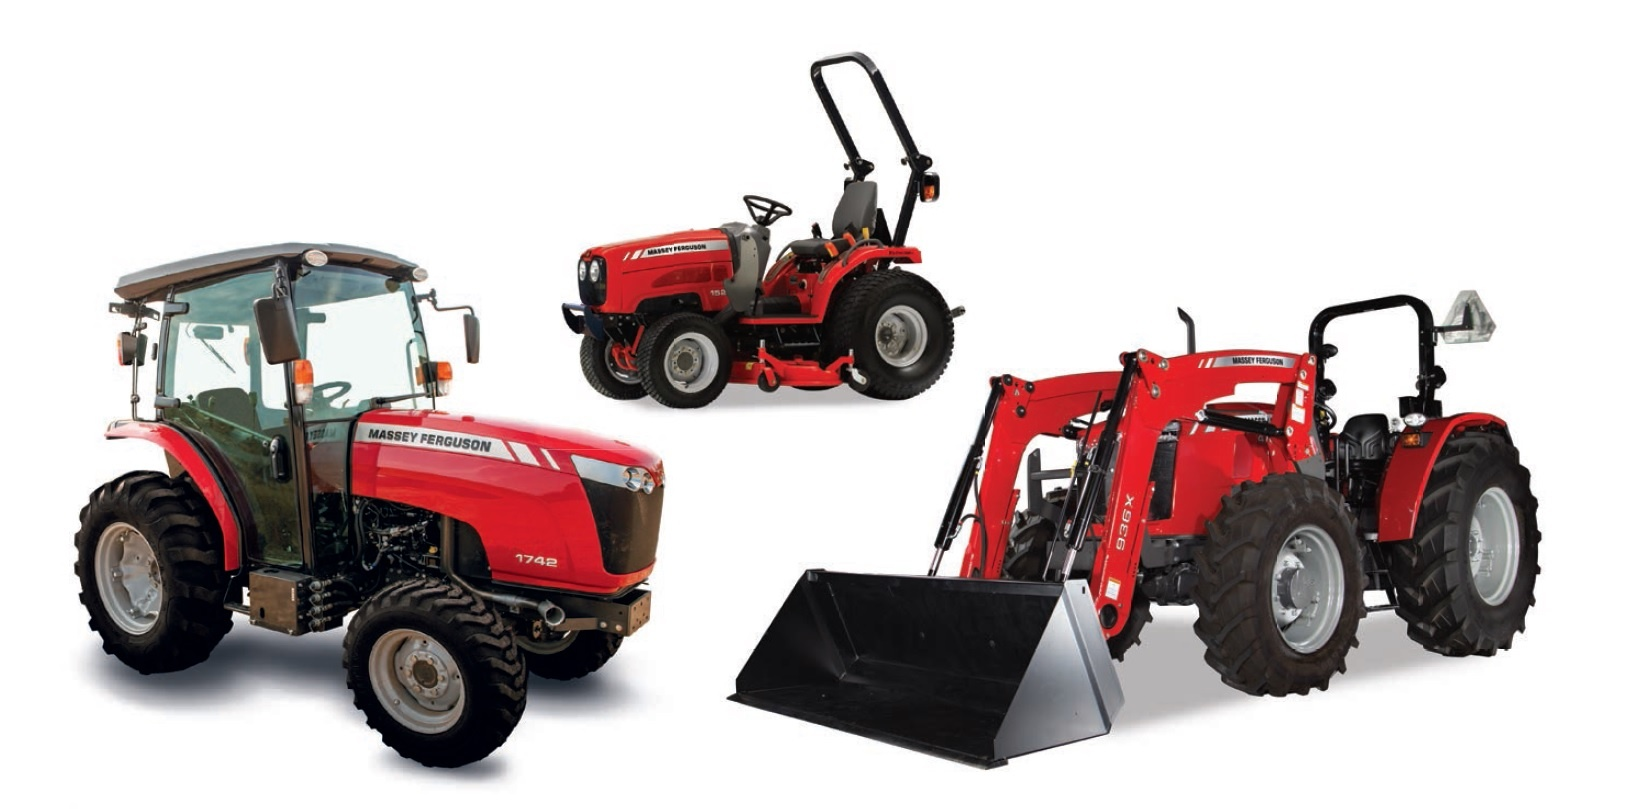 0% for 84 months on Massey Ferguson Compact Tractors